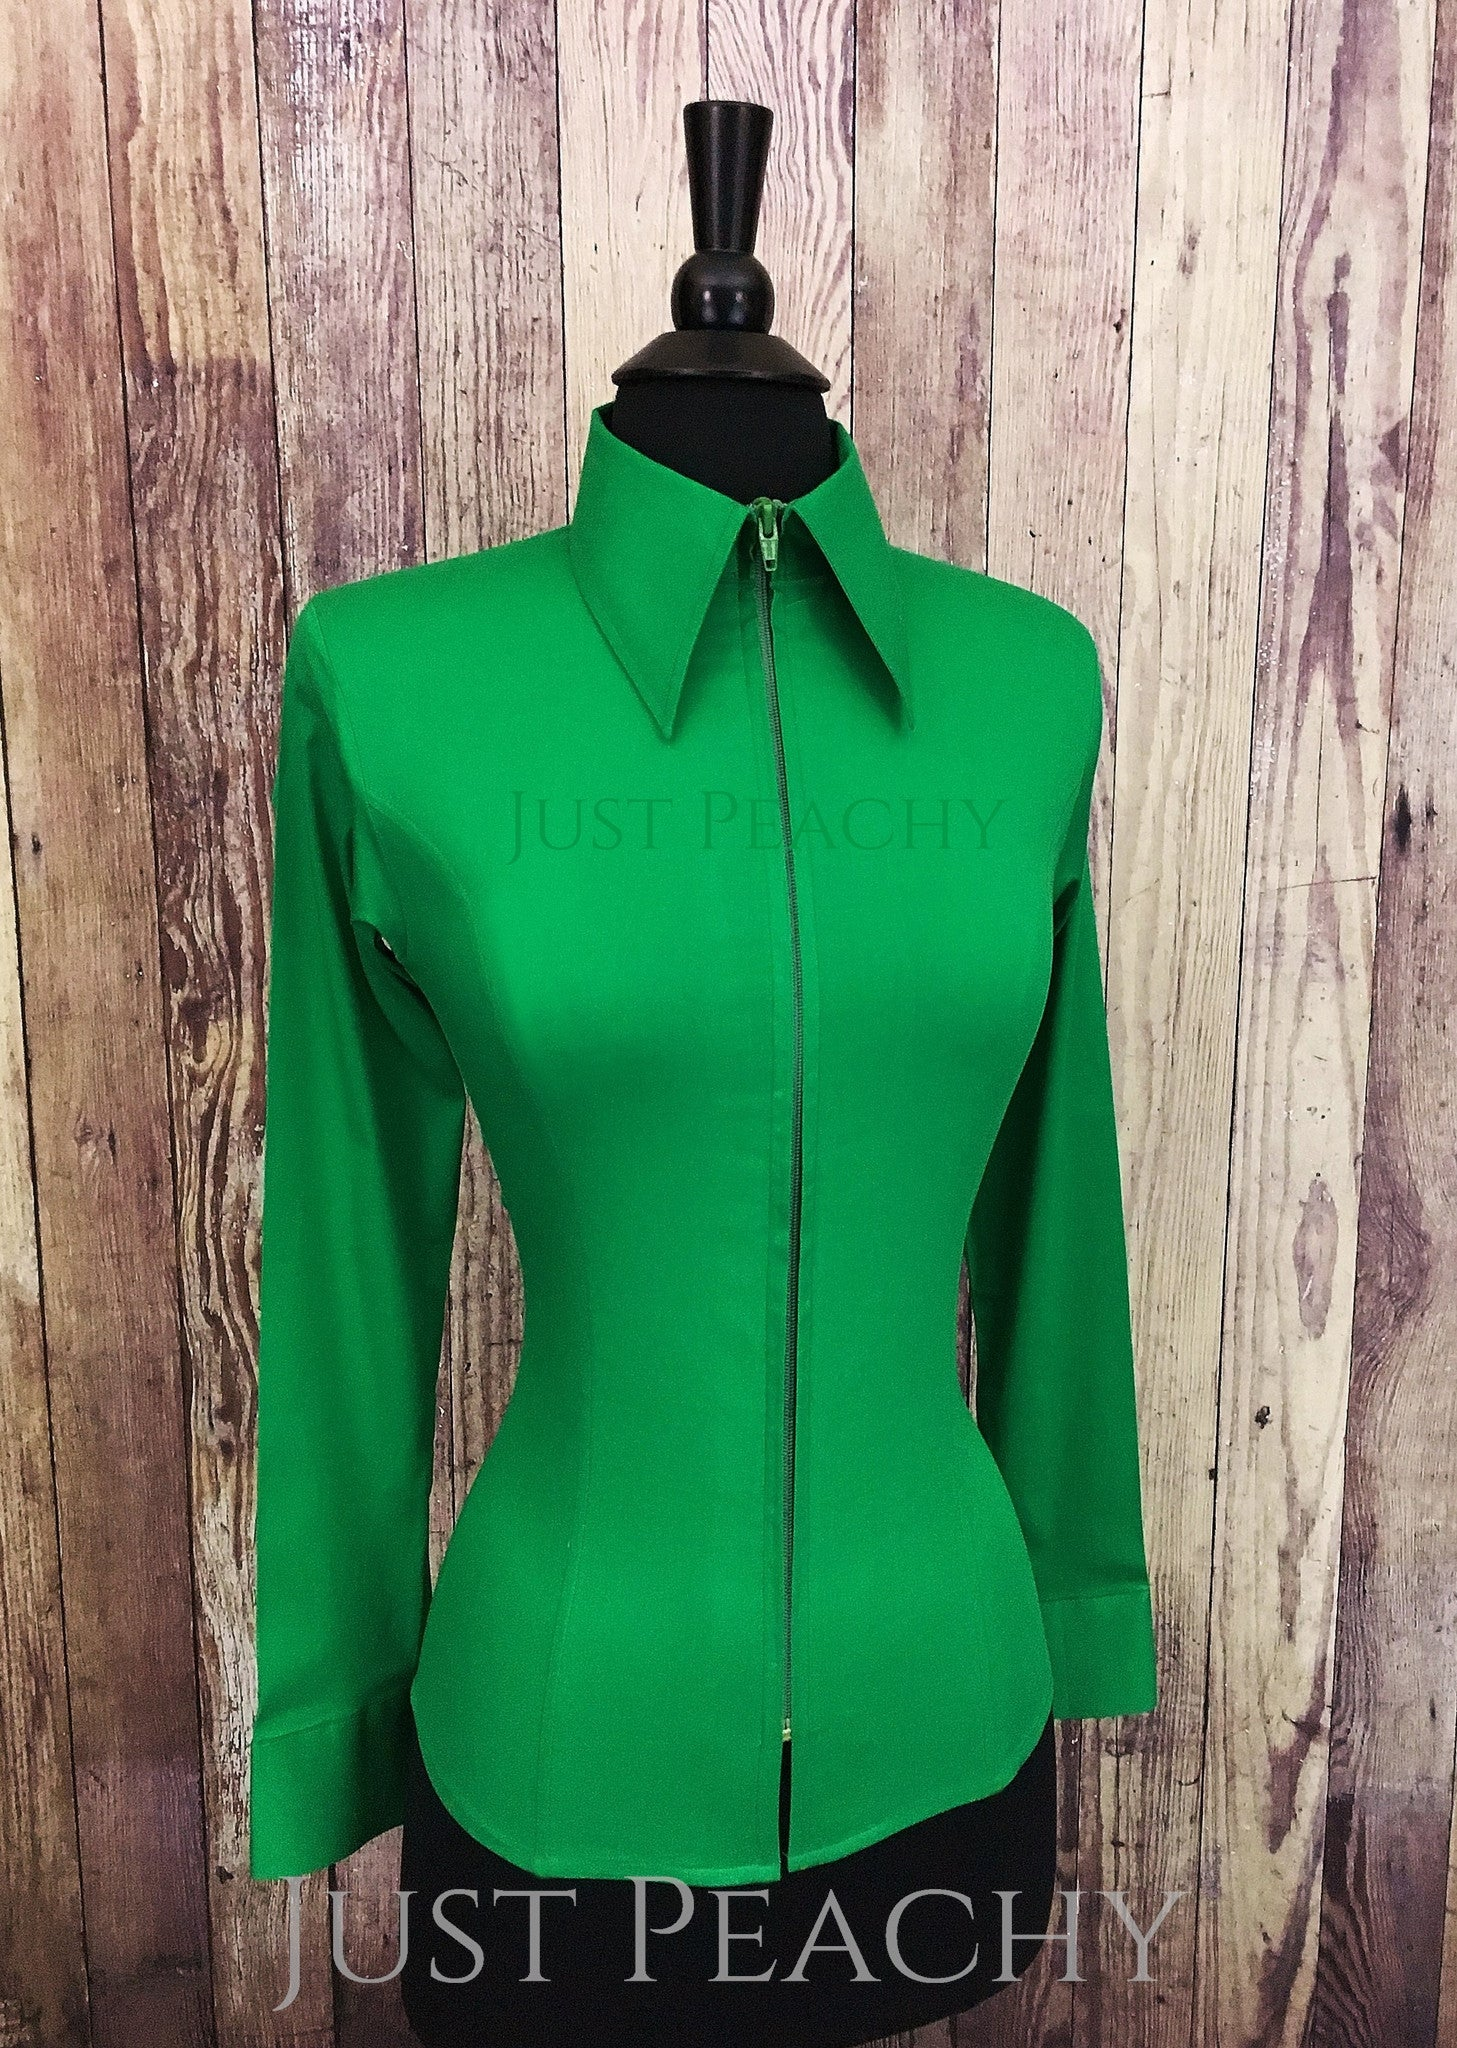 8da083c8 Just Peachy Zip Up Fitted Show Shirt ~ Kelly Green